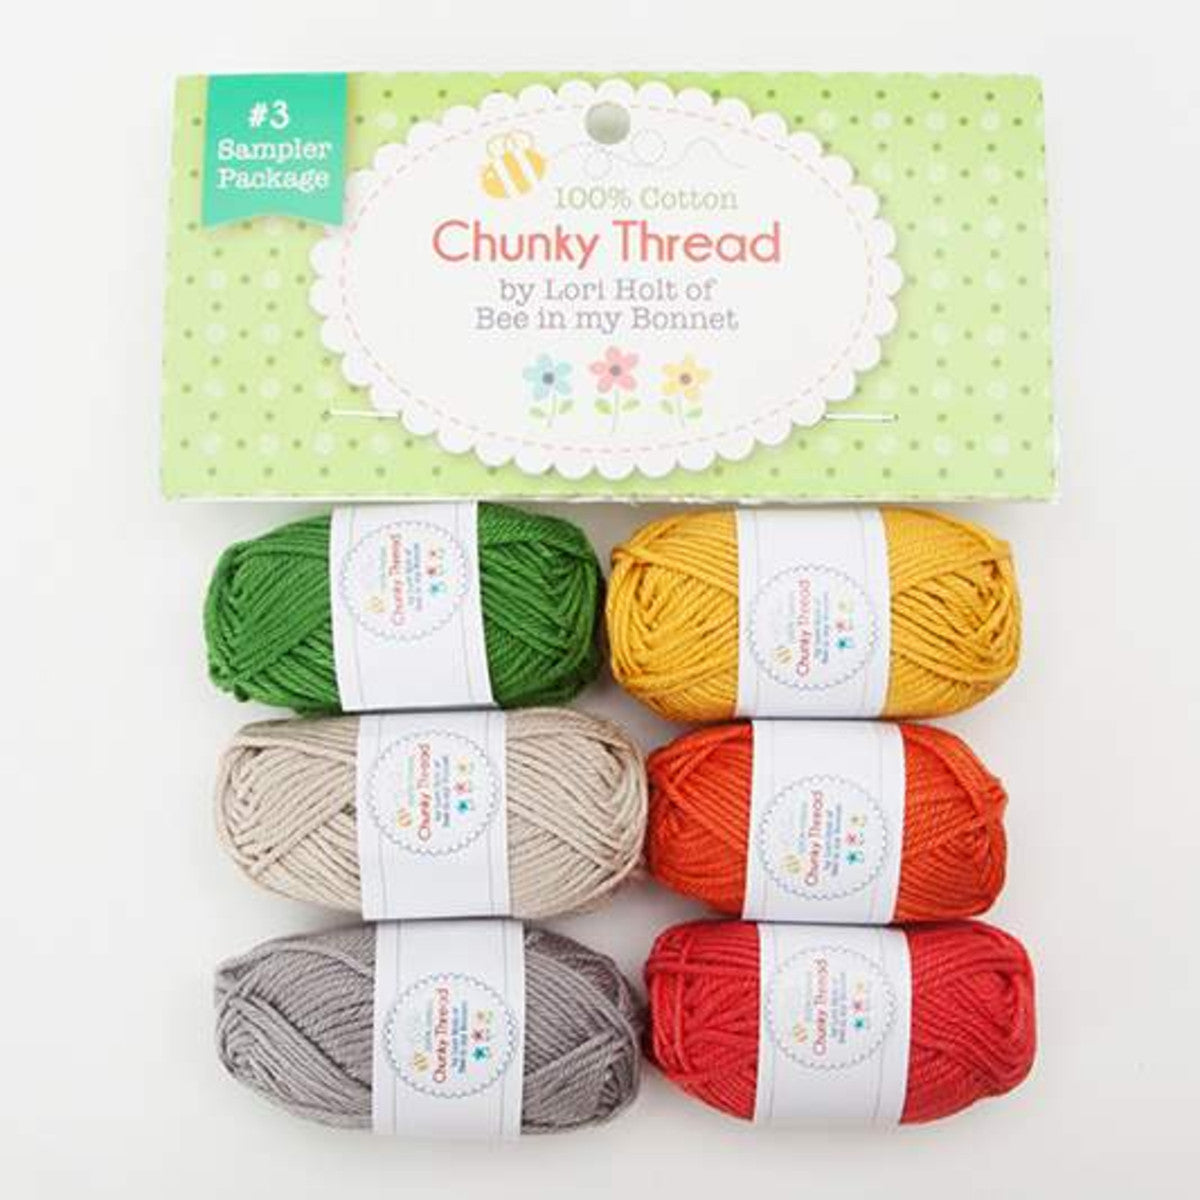 Crochet Chunky Thread, Lori Holt Sampler Pack #3